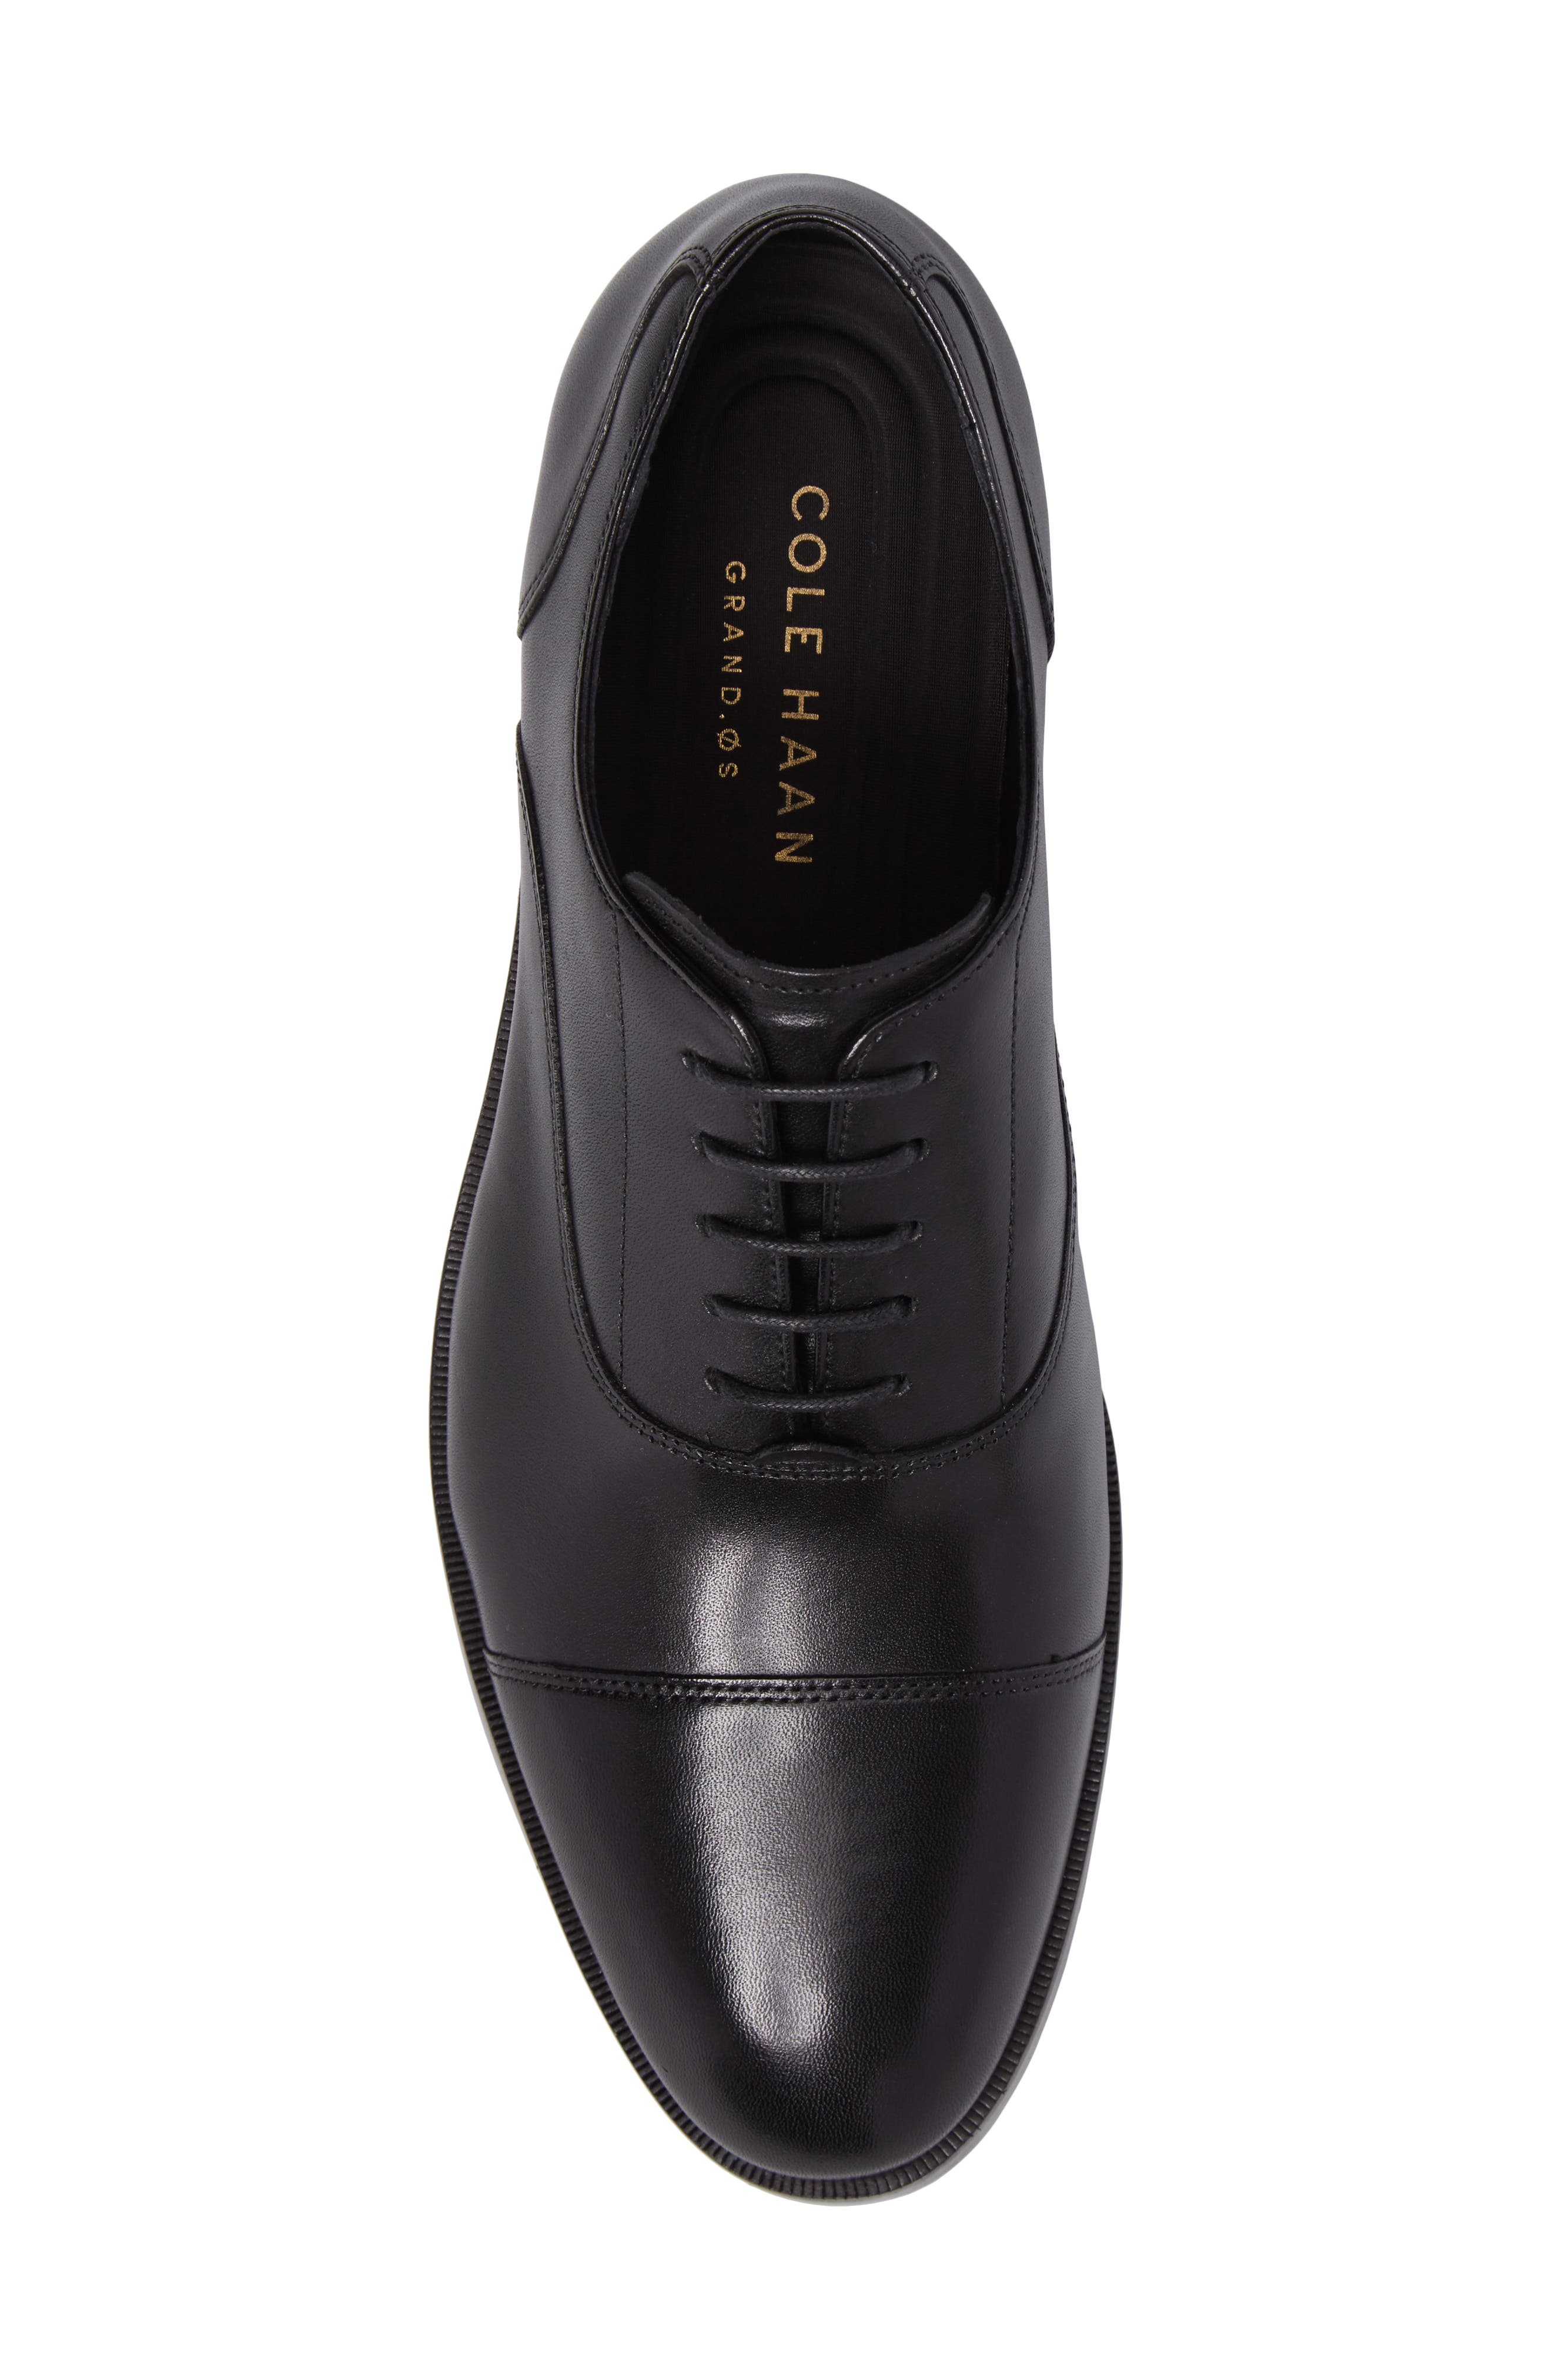 COLE HAAN, Harrison Grand Cap Toe Oxford, Alternate thumbnail 5, color, BLACK/ BLACK LEATHER